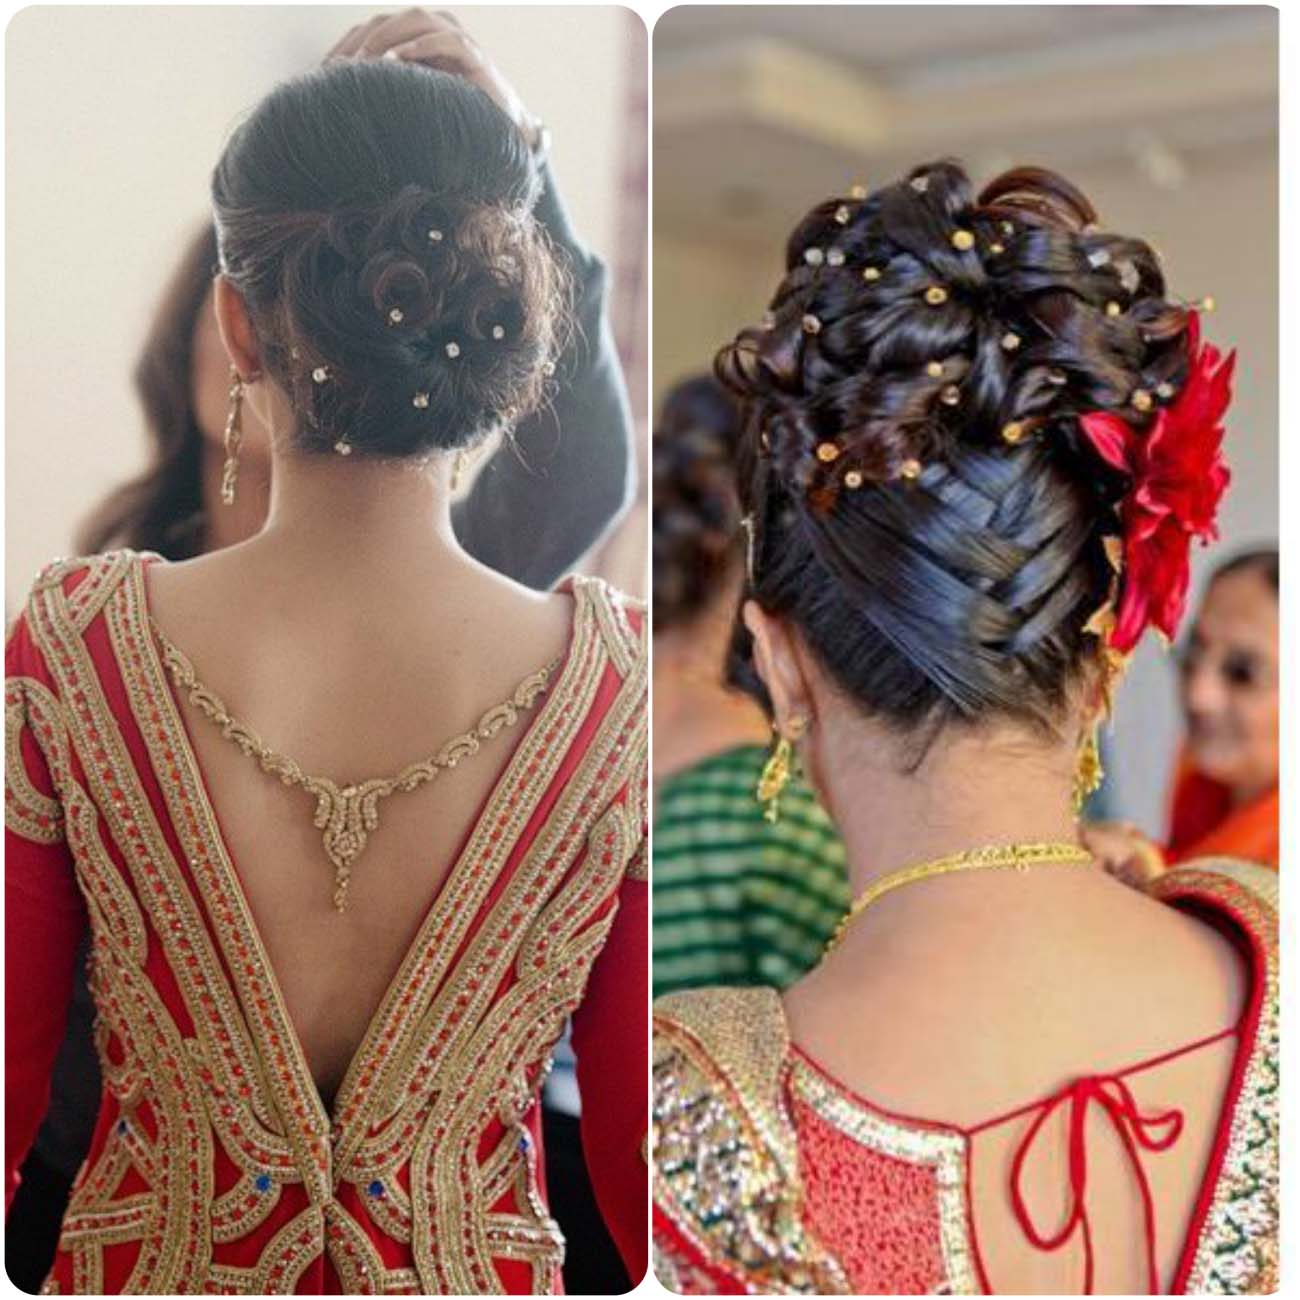 Best Indian Wedding Hairstyles For Christian Brides: Indian Wedding Hairstyles For Brides 2017-2018